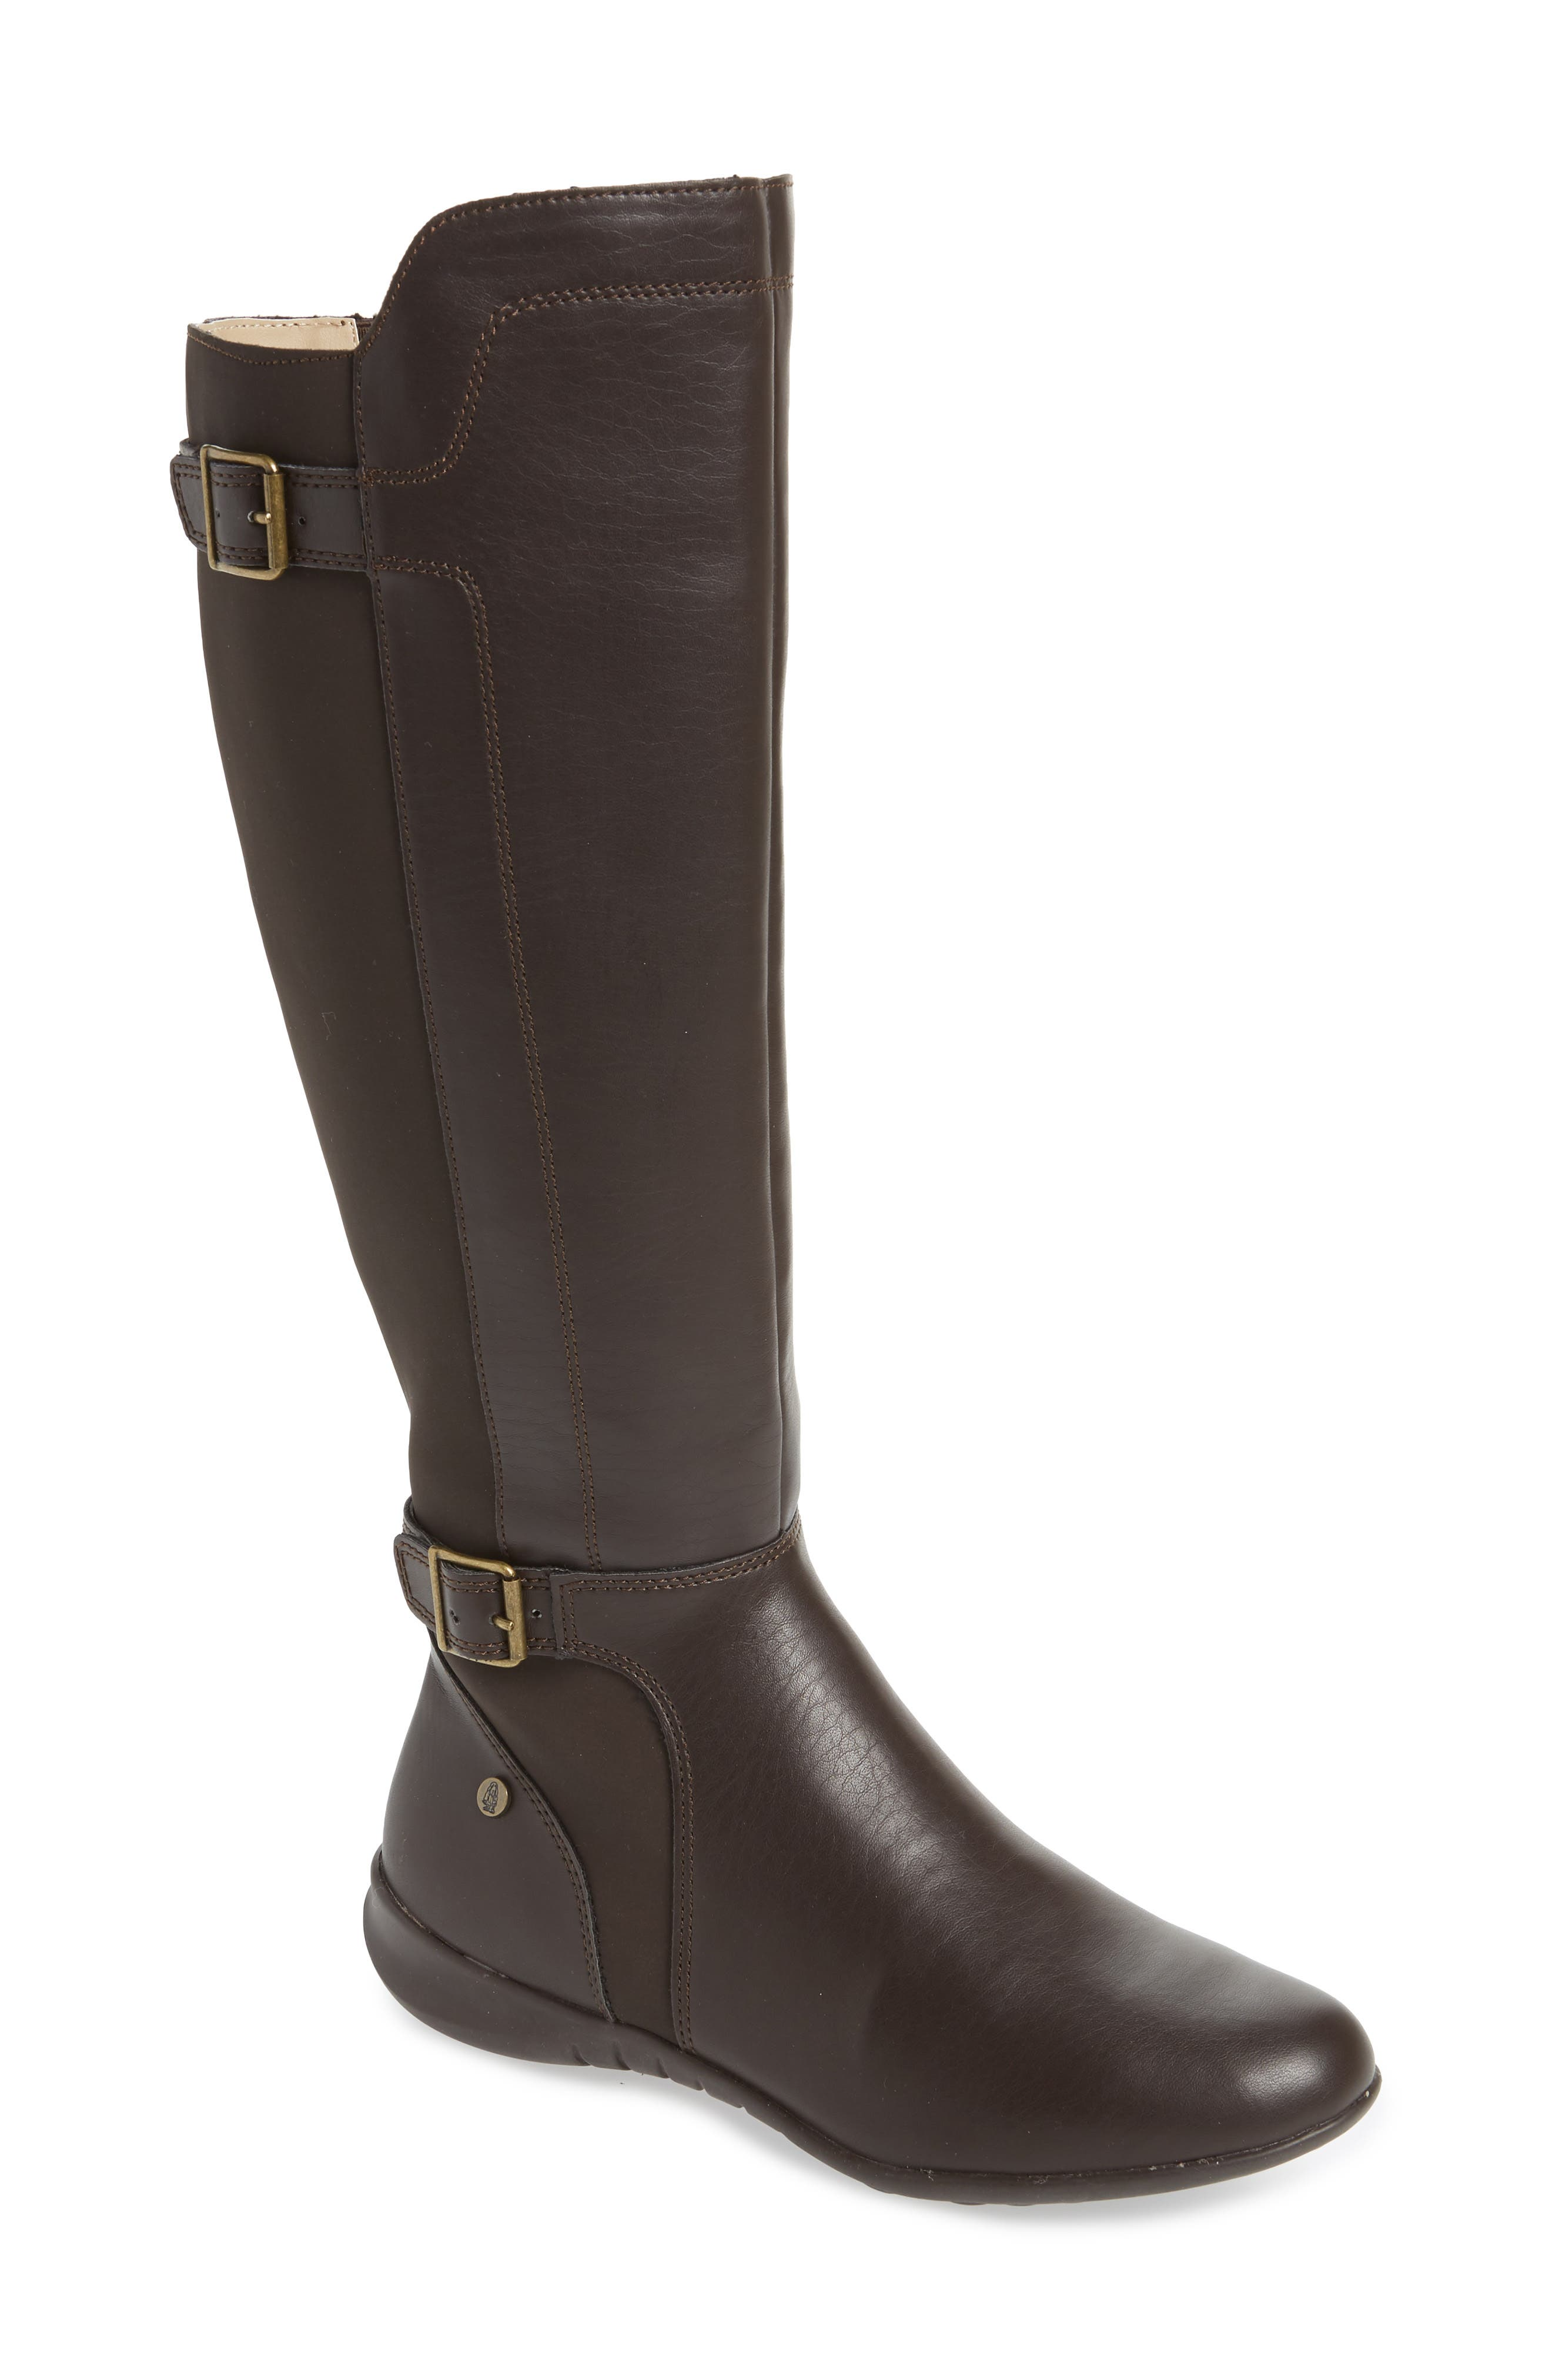 Hush Puppies Bria Knee High Boot, Brown